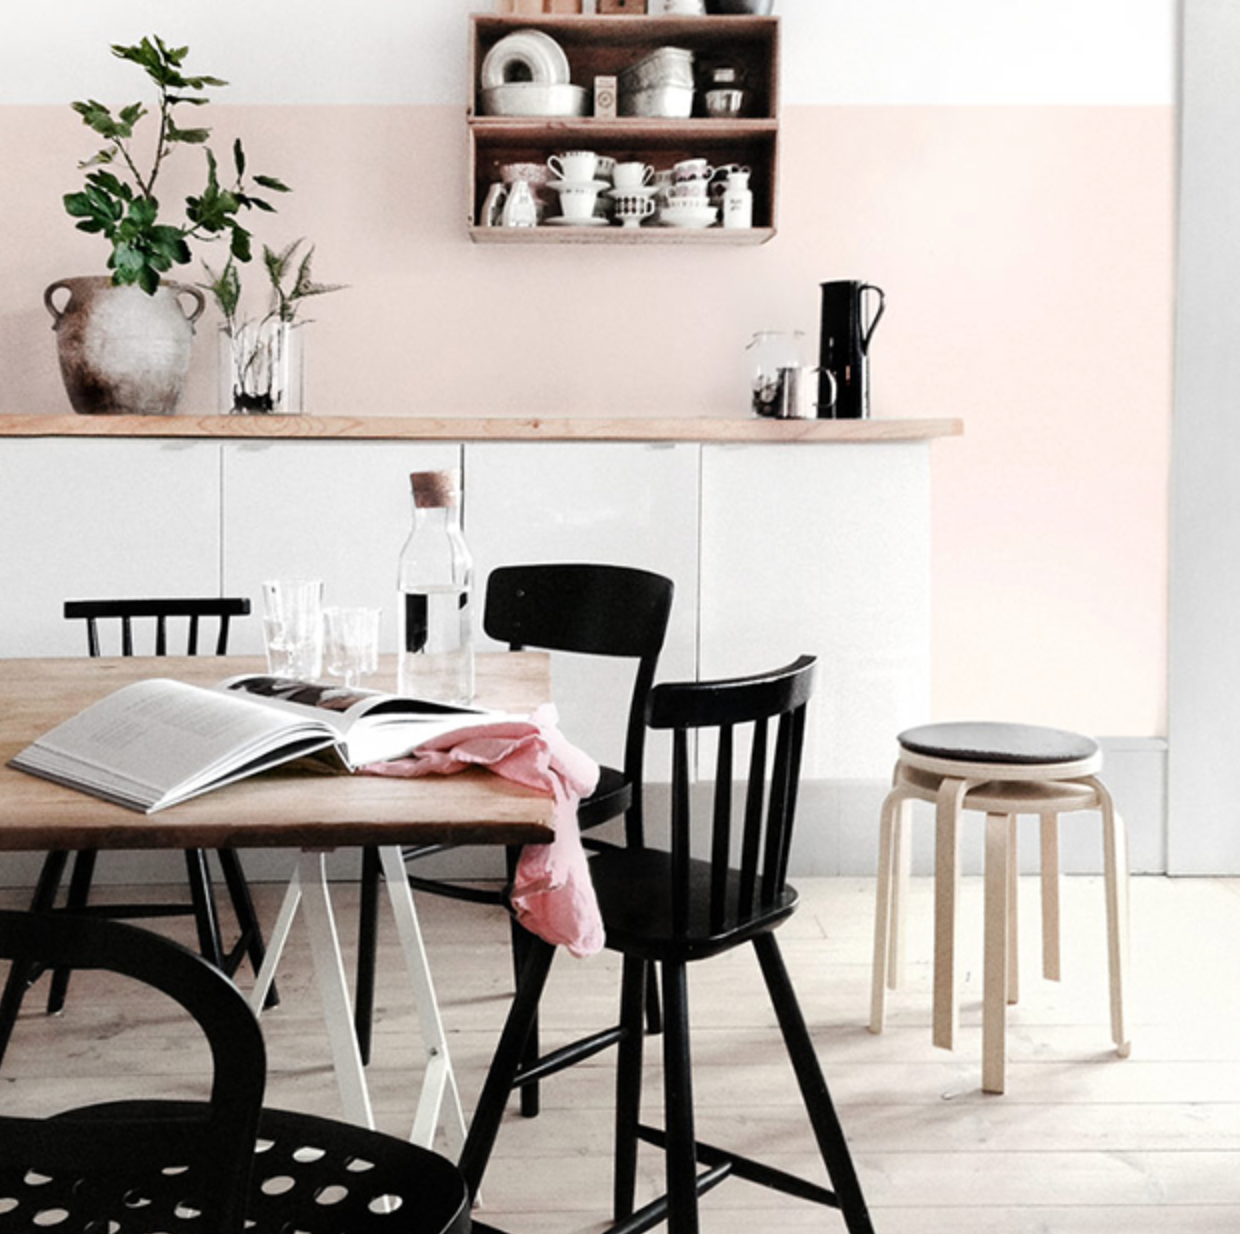 Delight In The Sunlight: Pink & Black Kitchen